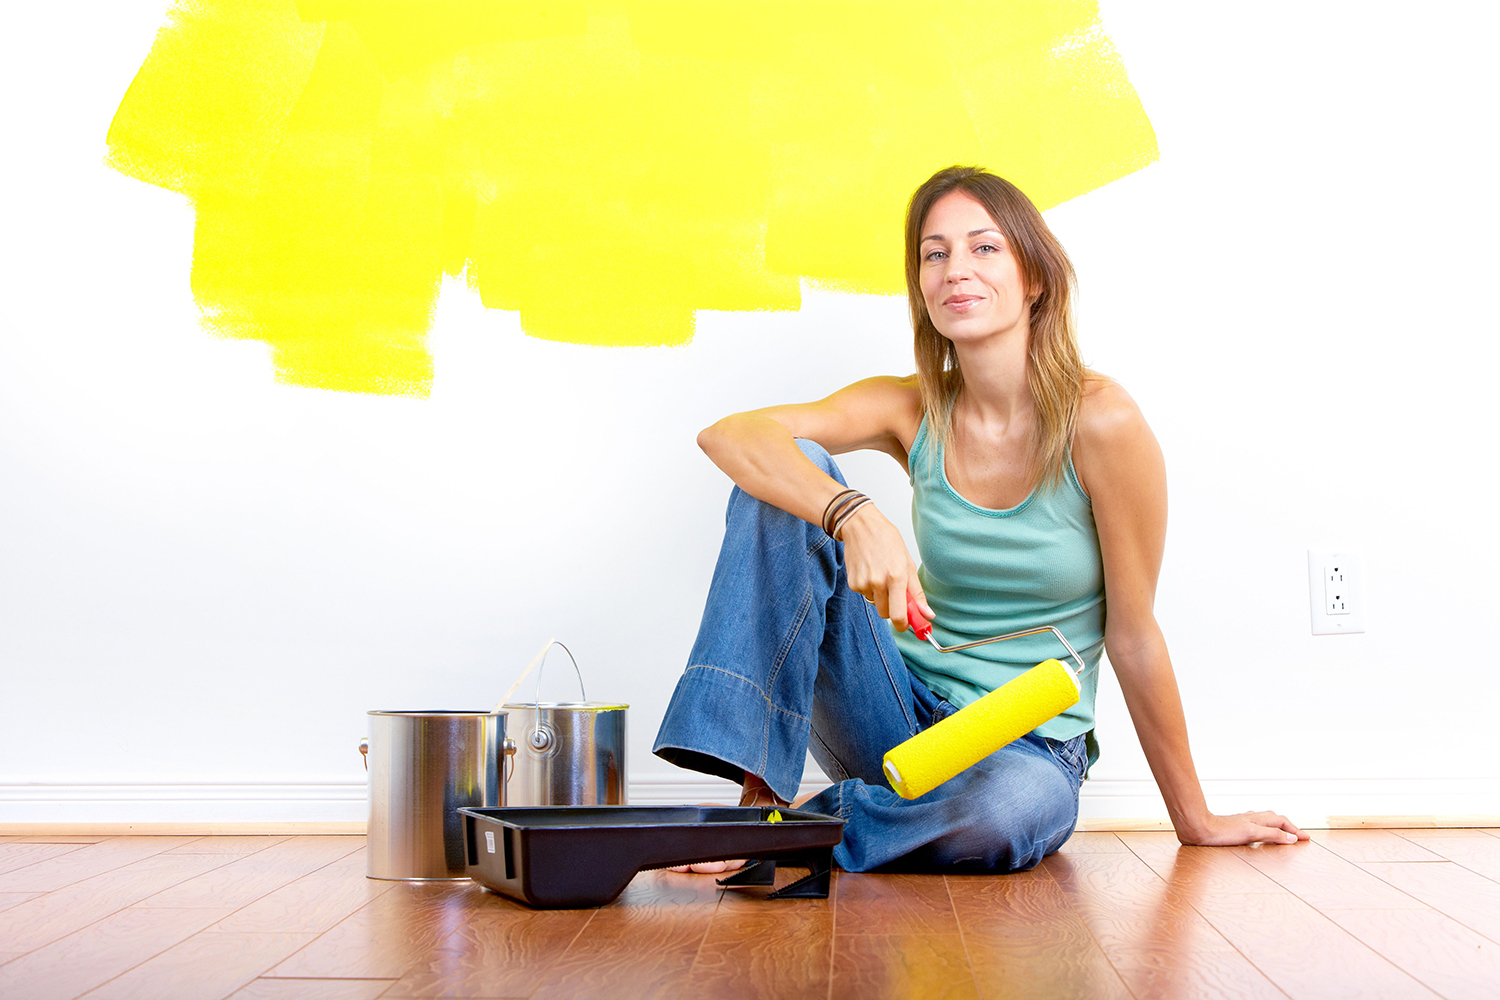 Painting a wall in yellow